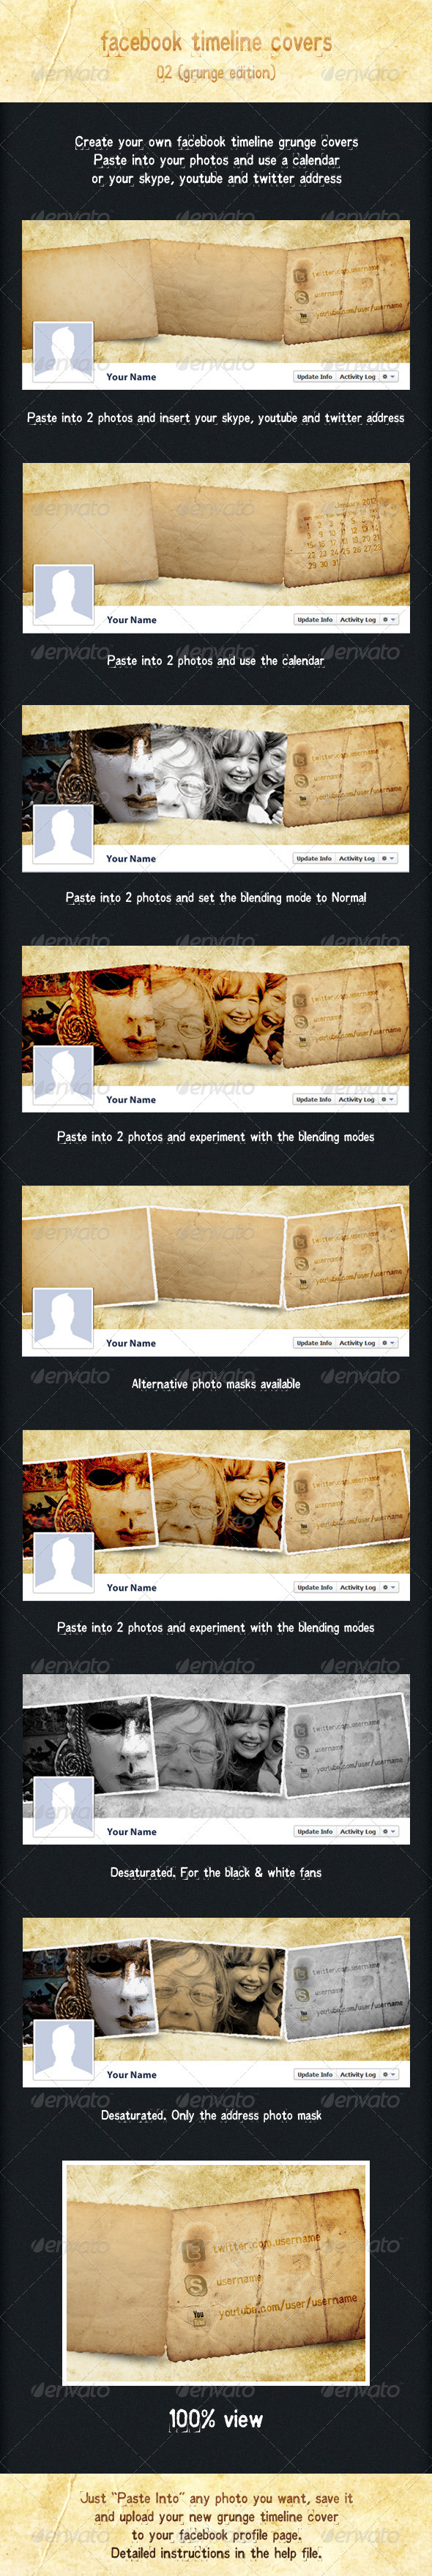 GraphicRiver Facebook Timeline Covers Vol.2 1329798